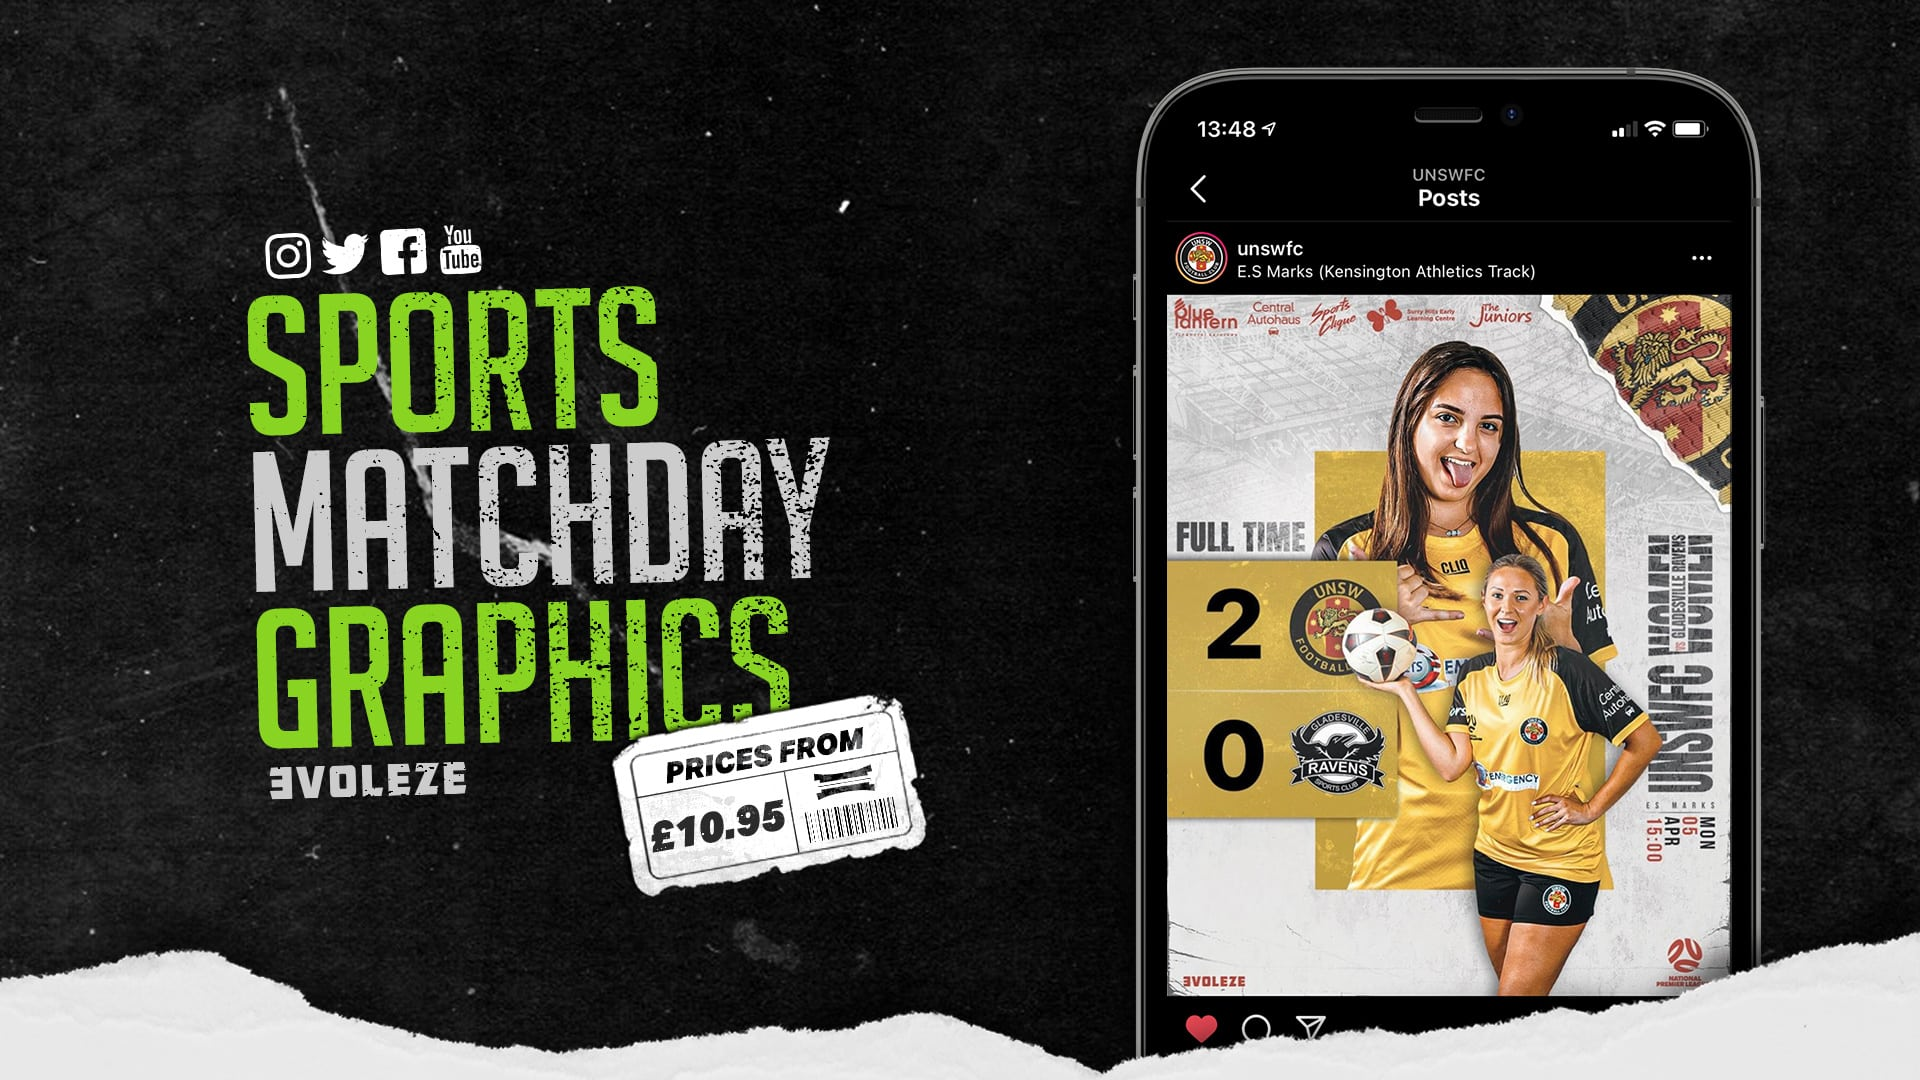 sports matchday graphics set